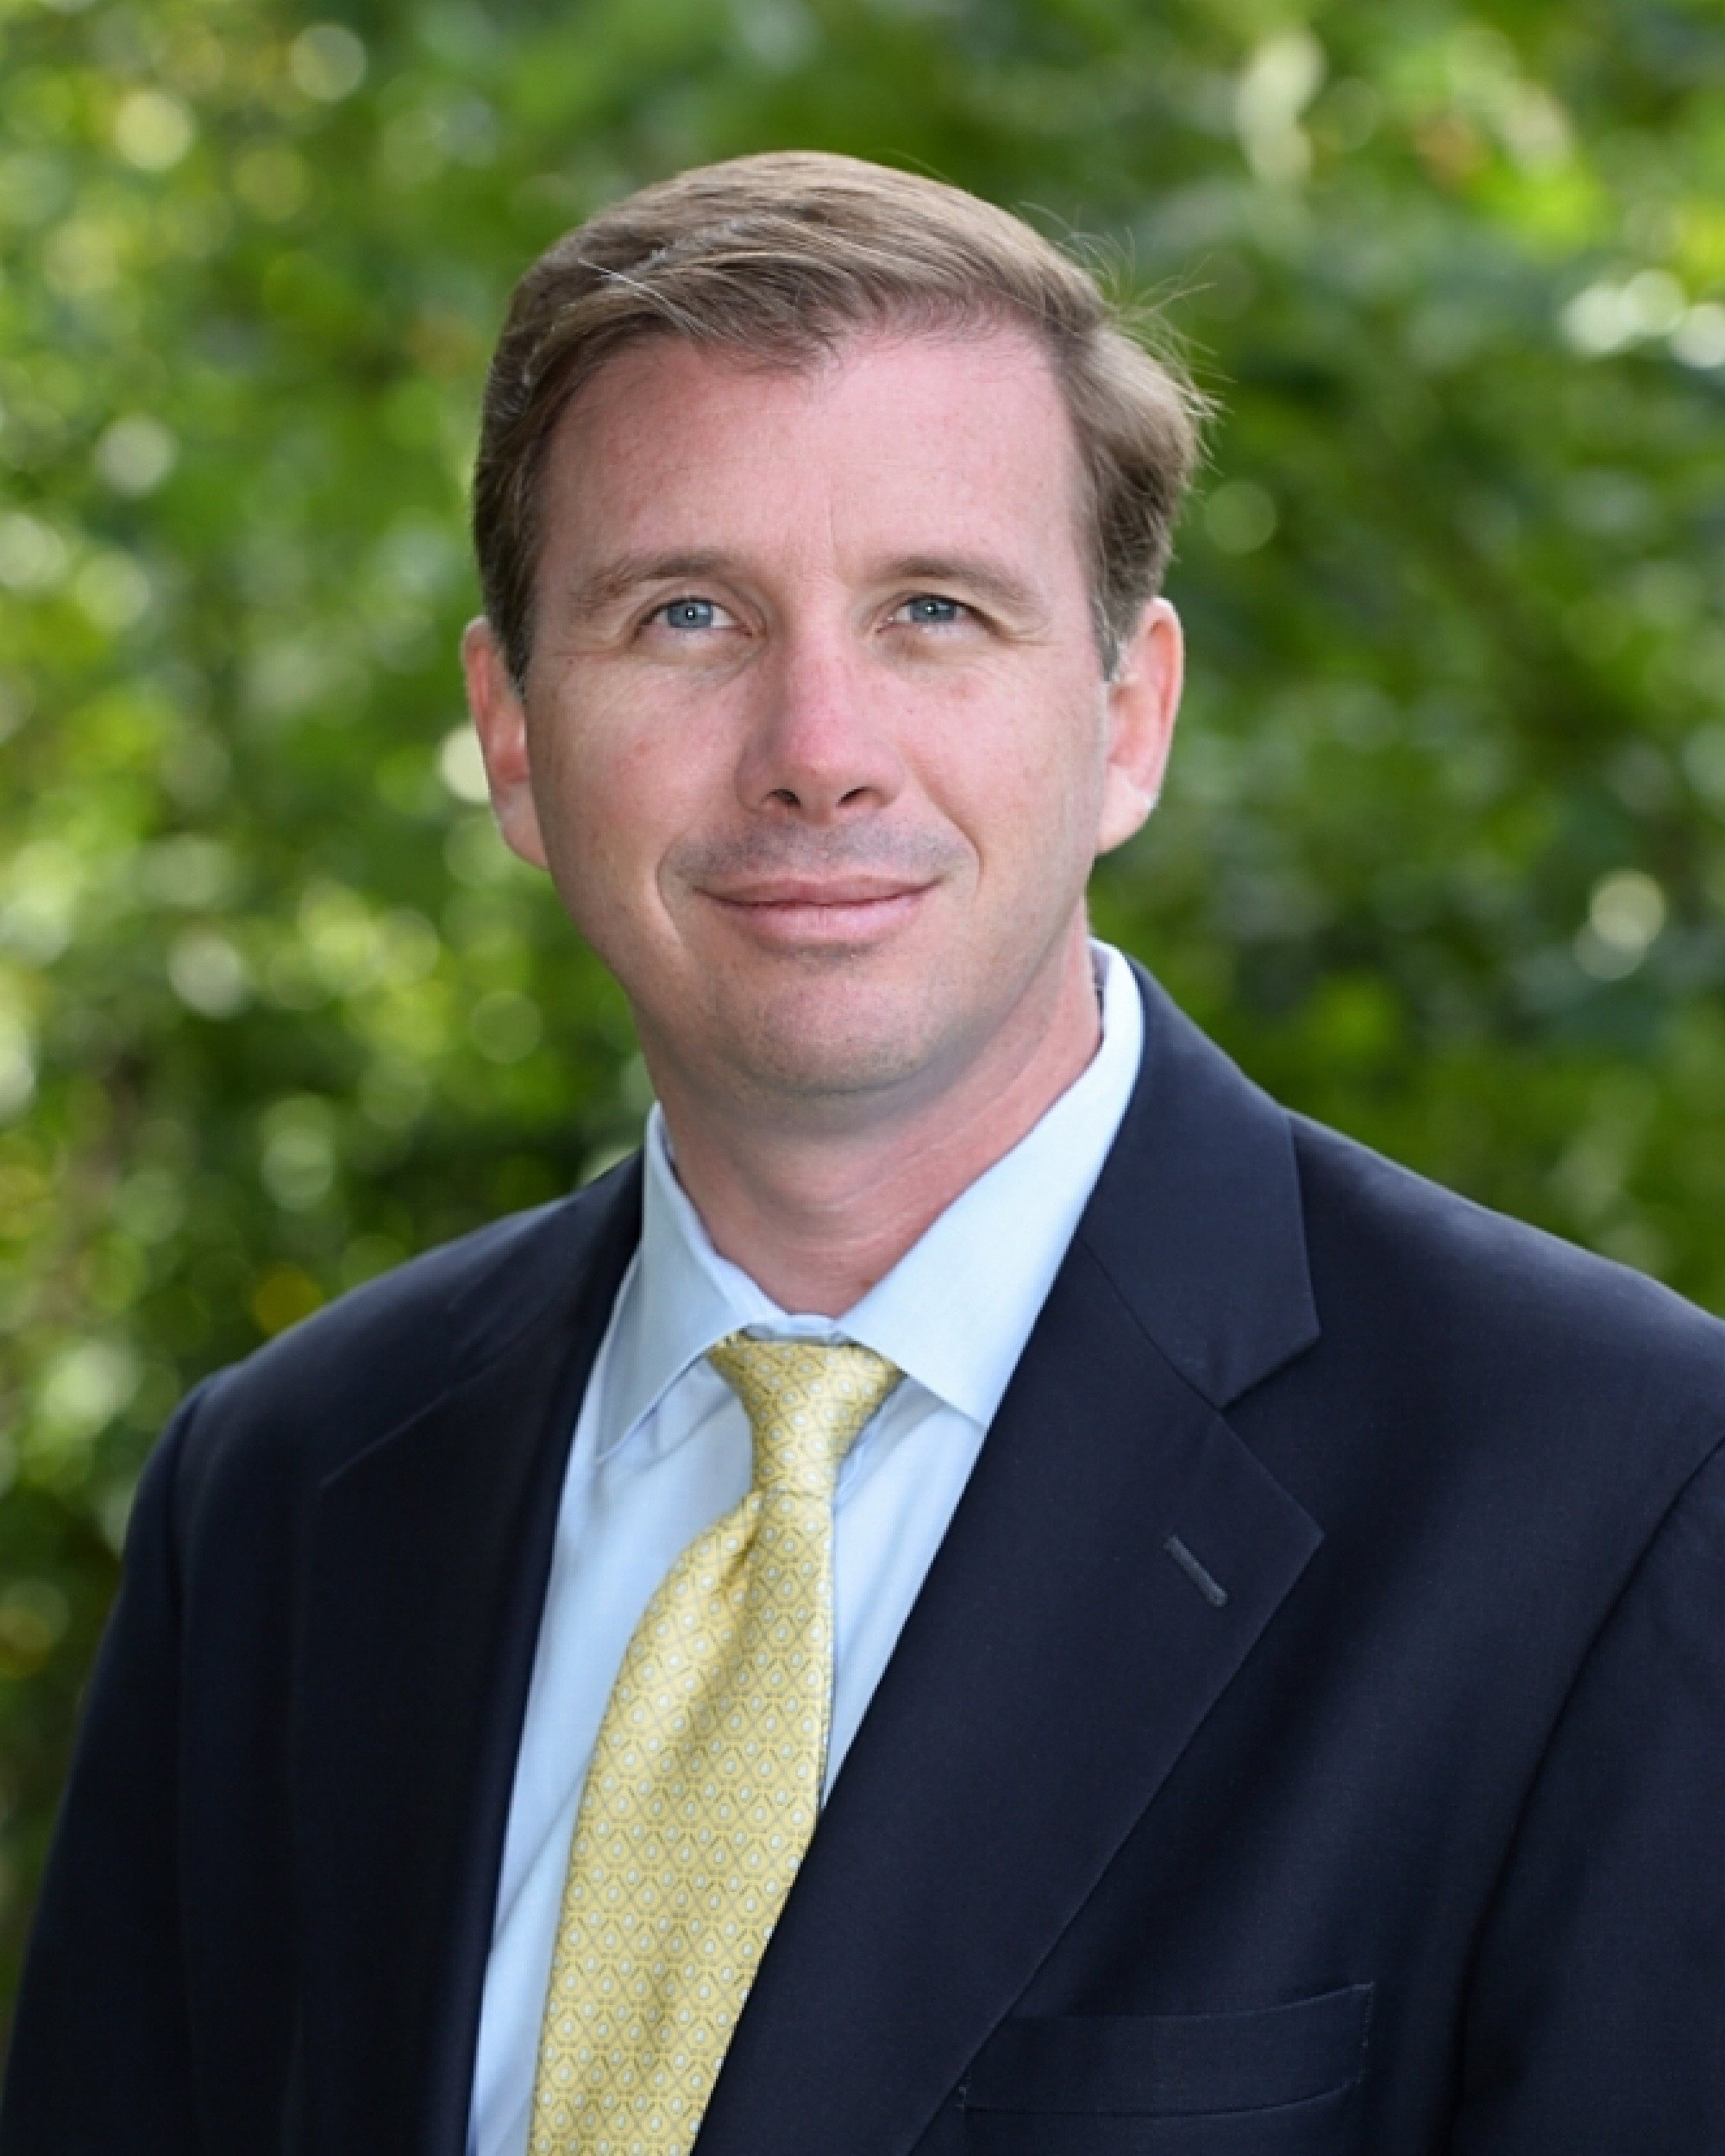 Jim Foley: Asst. Head of School for Leadership & Innovation